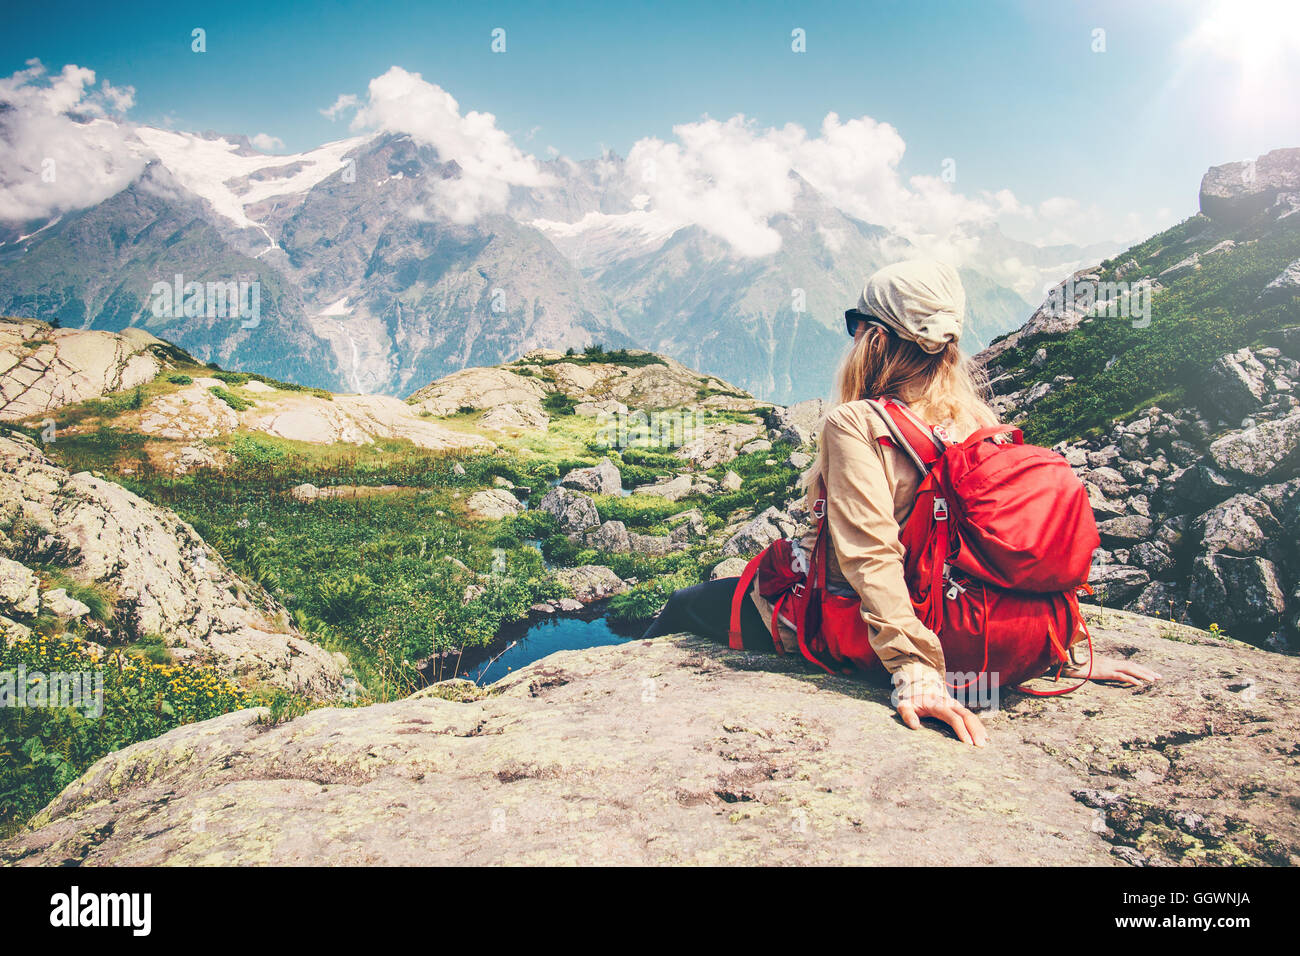 Woman Traveler with backpack relaxing on cliff with mountains landscape on background Travel Lifestyle concept hiking - Stock Image